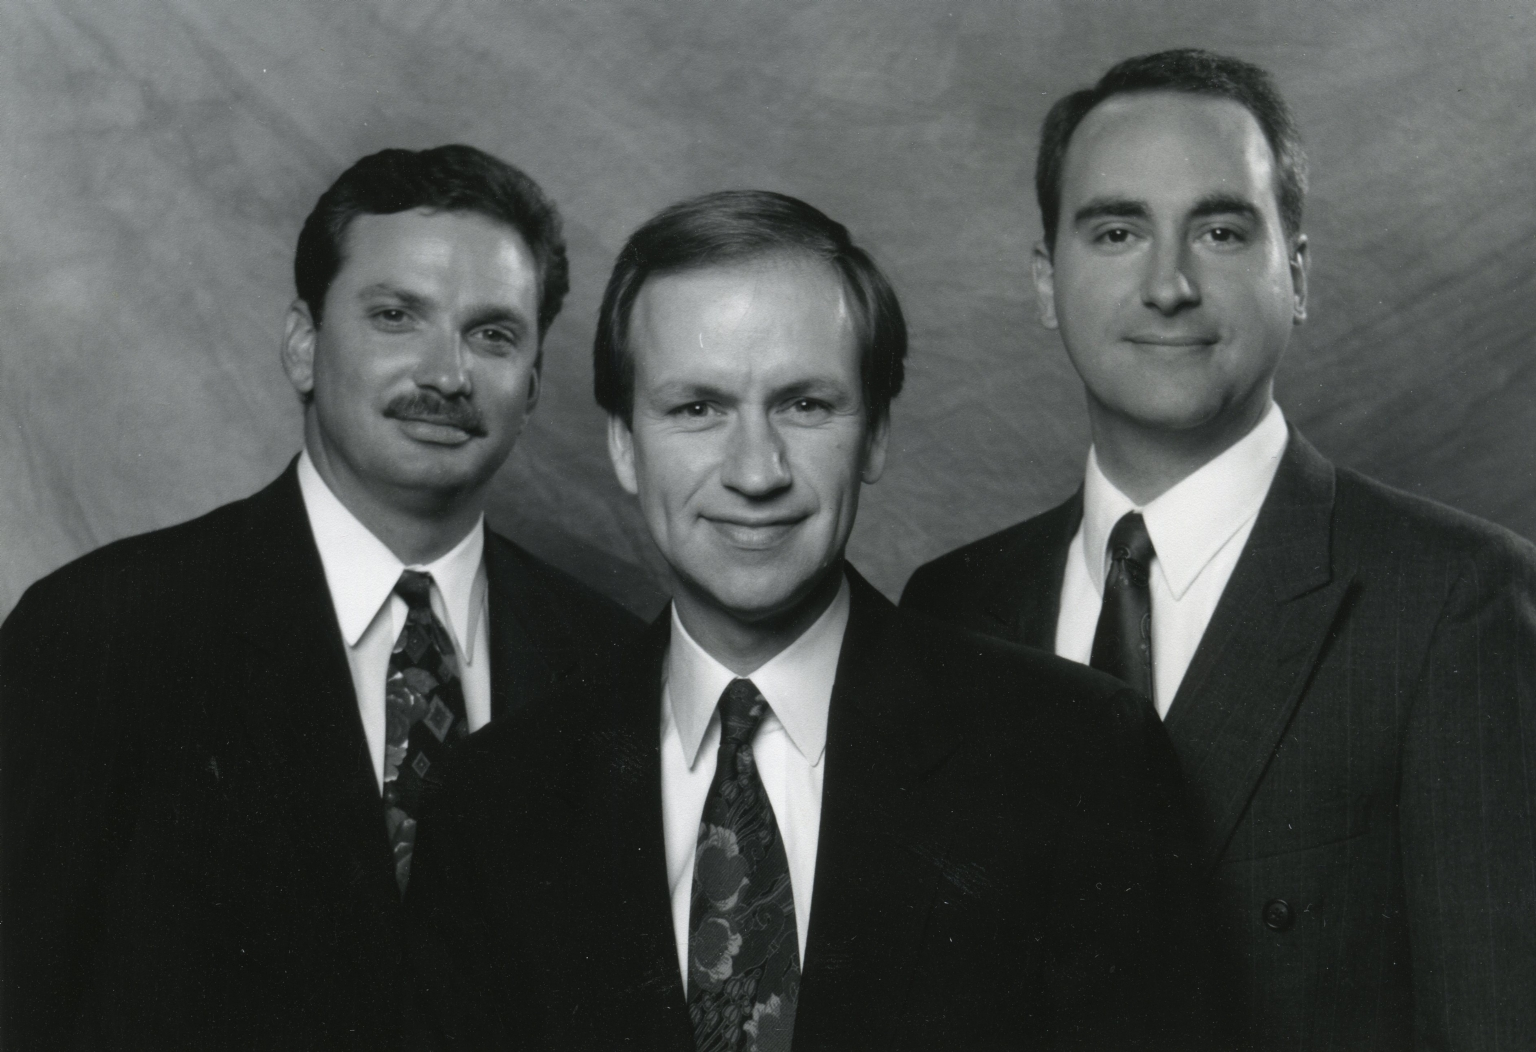 Weatherman Lew Jetton, meteorologist Cal Sisto and Ron Rhodes